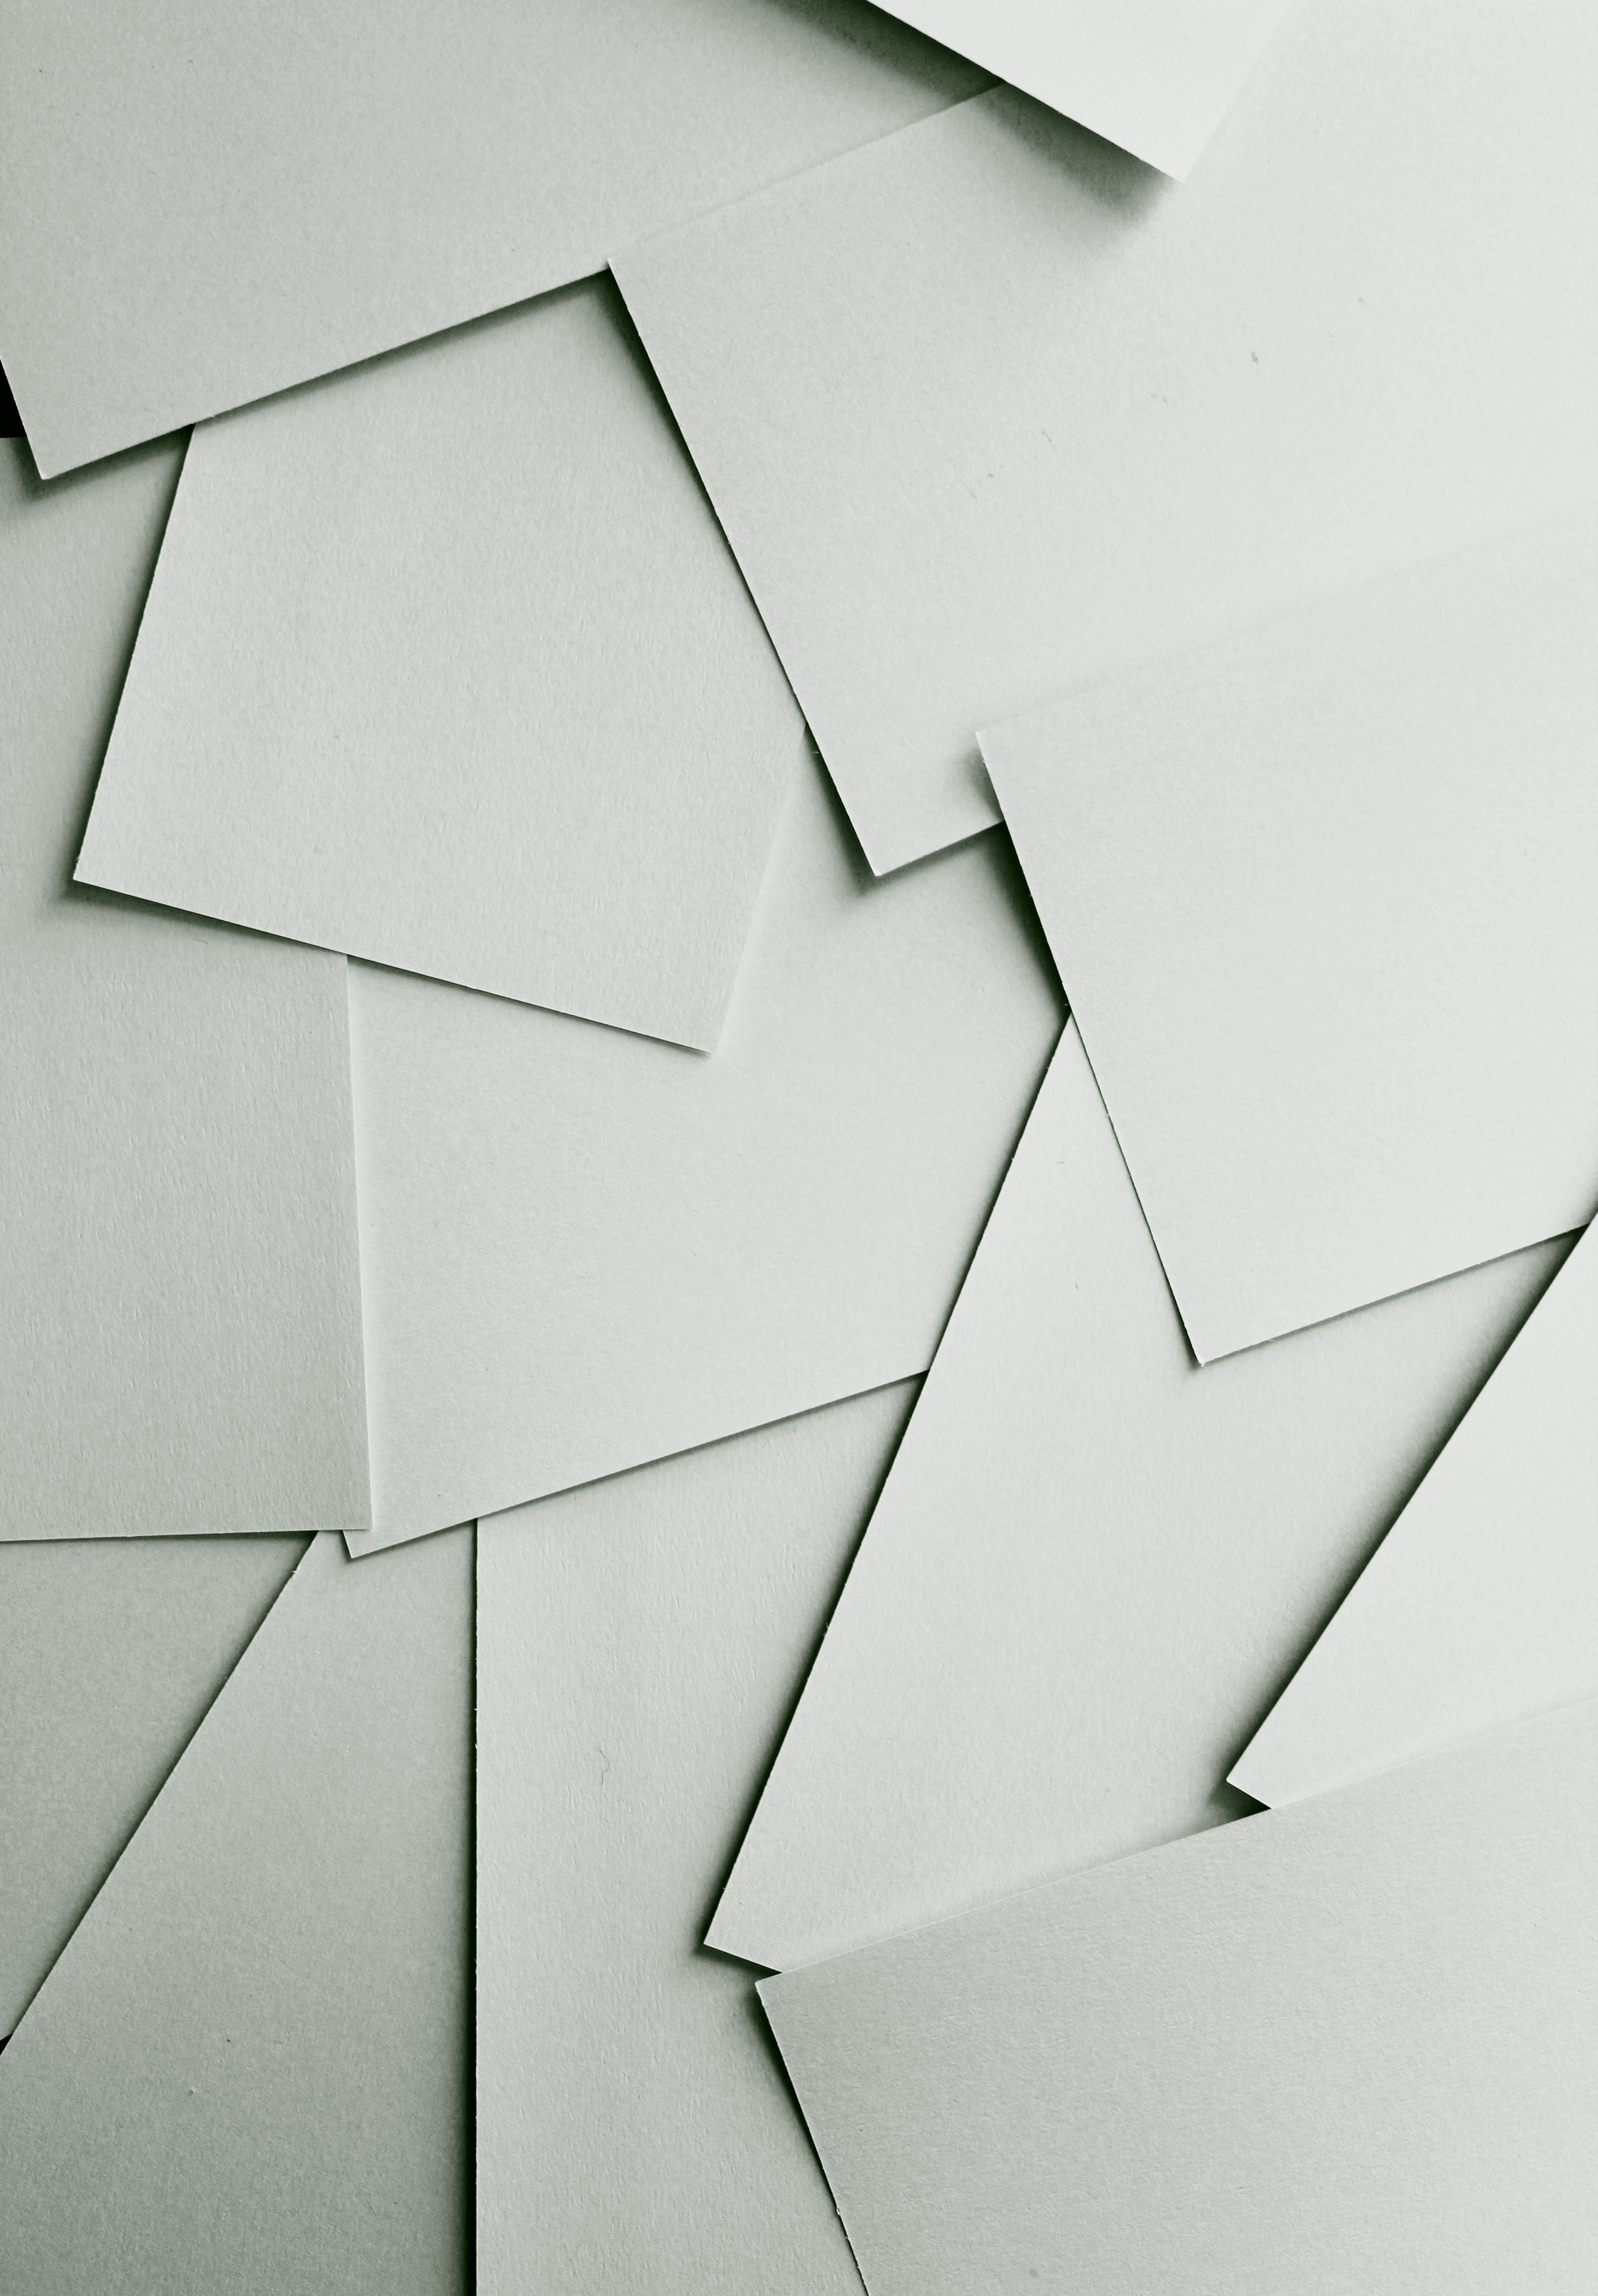 Scattered white paper